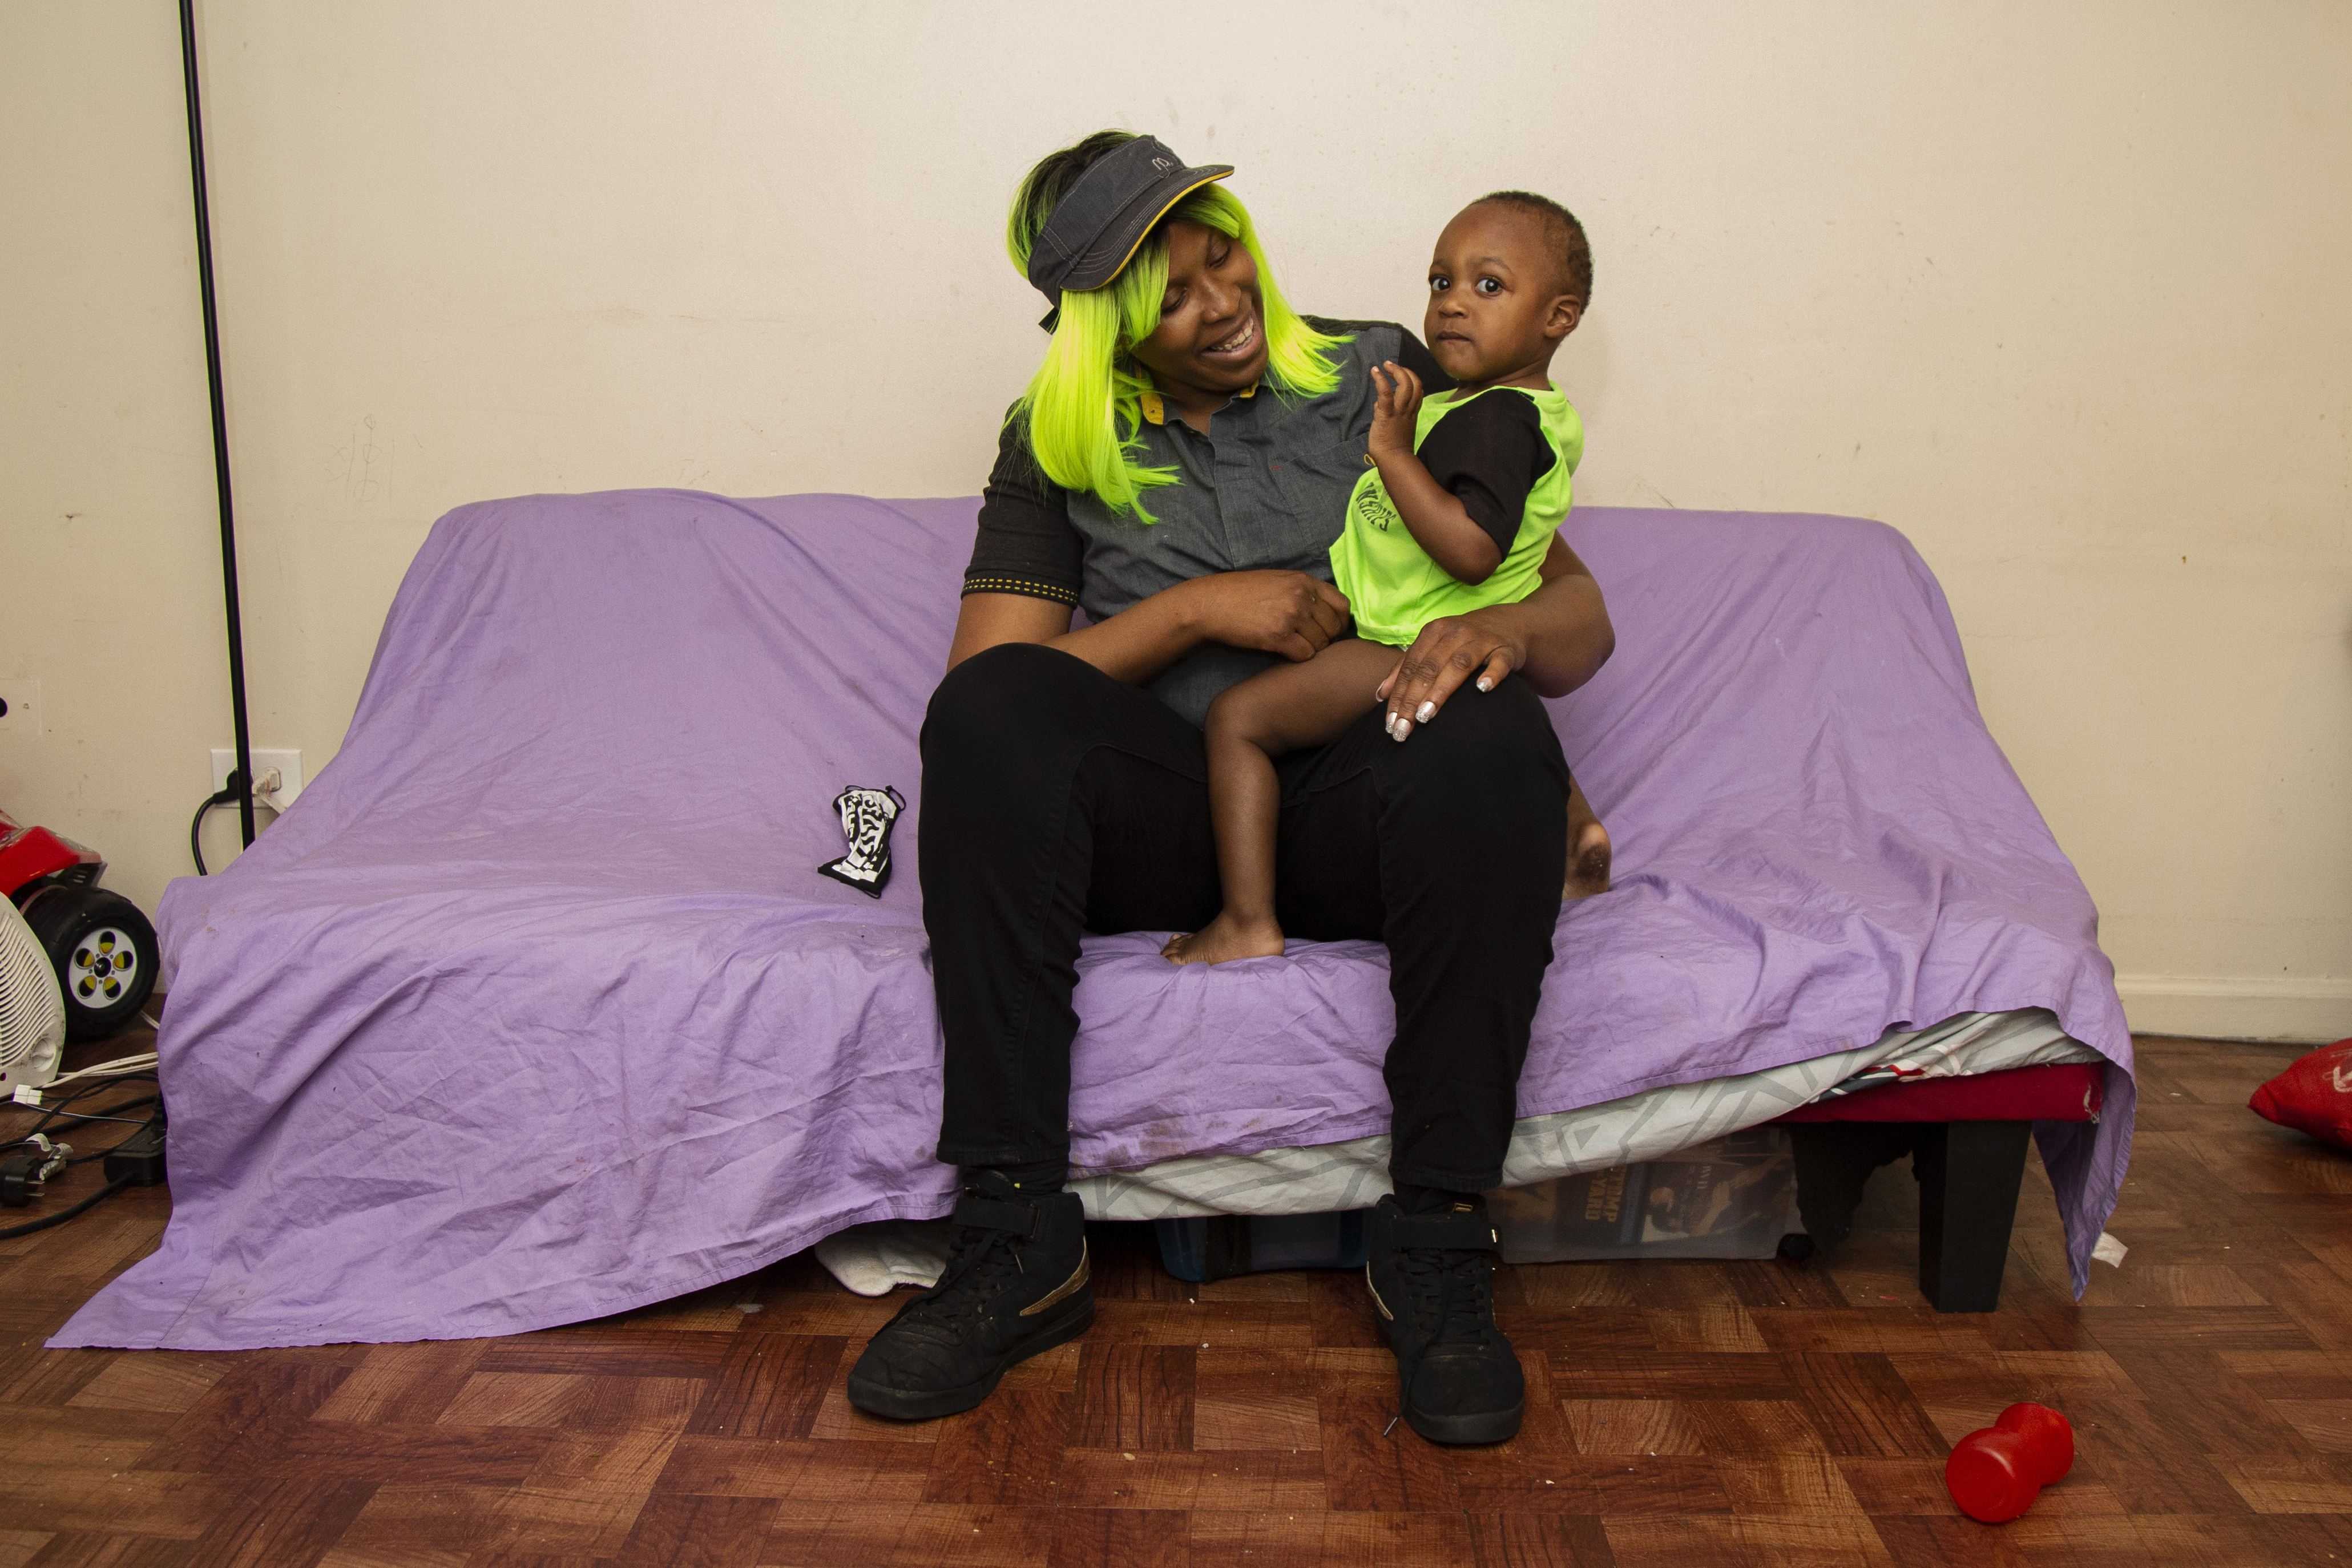 Ieshia Townsend plays with her son Demarihon Johnson at their home in South Chicago.